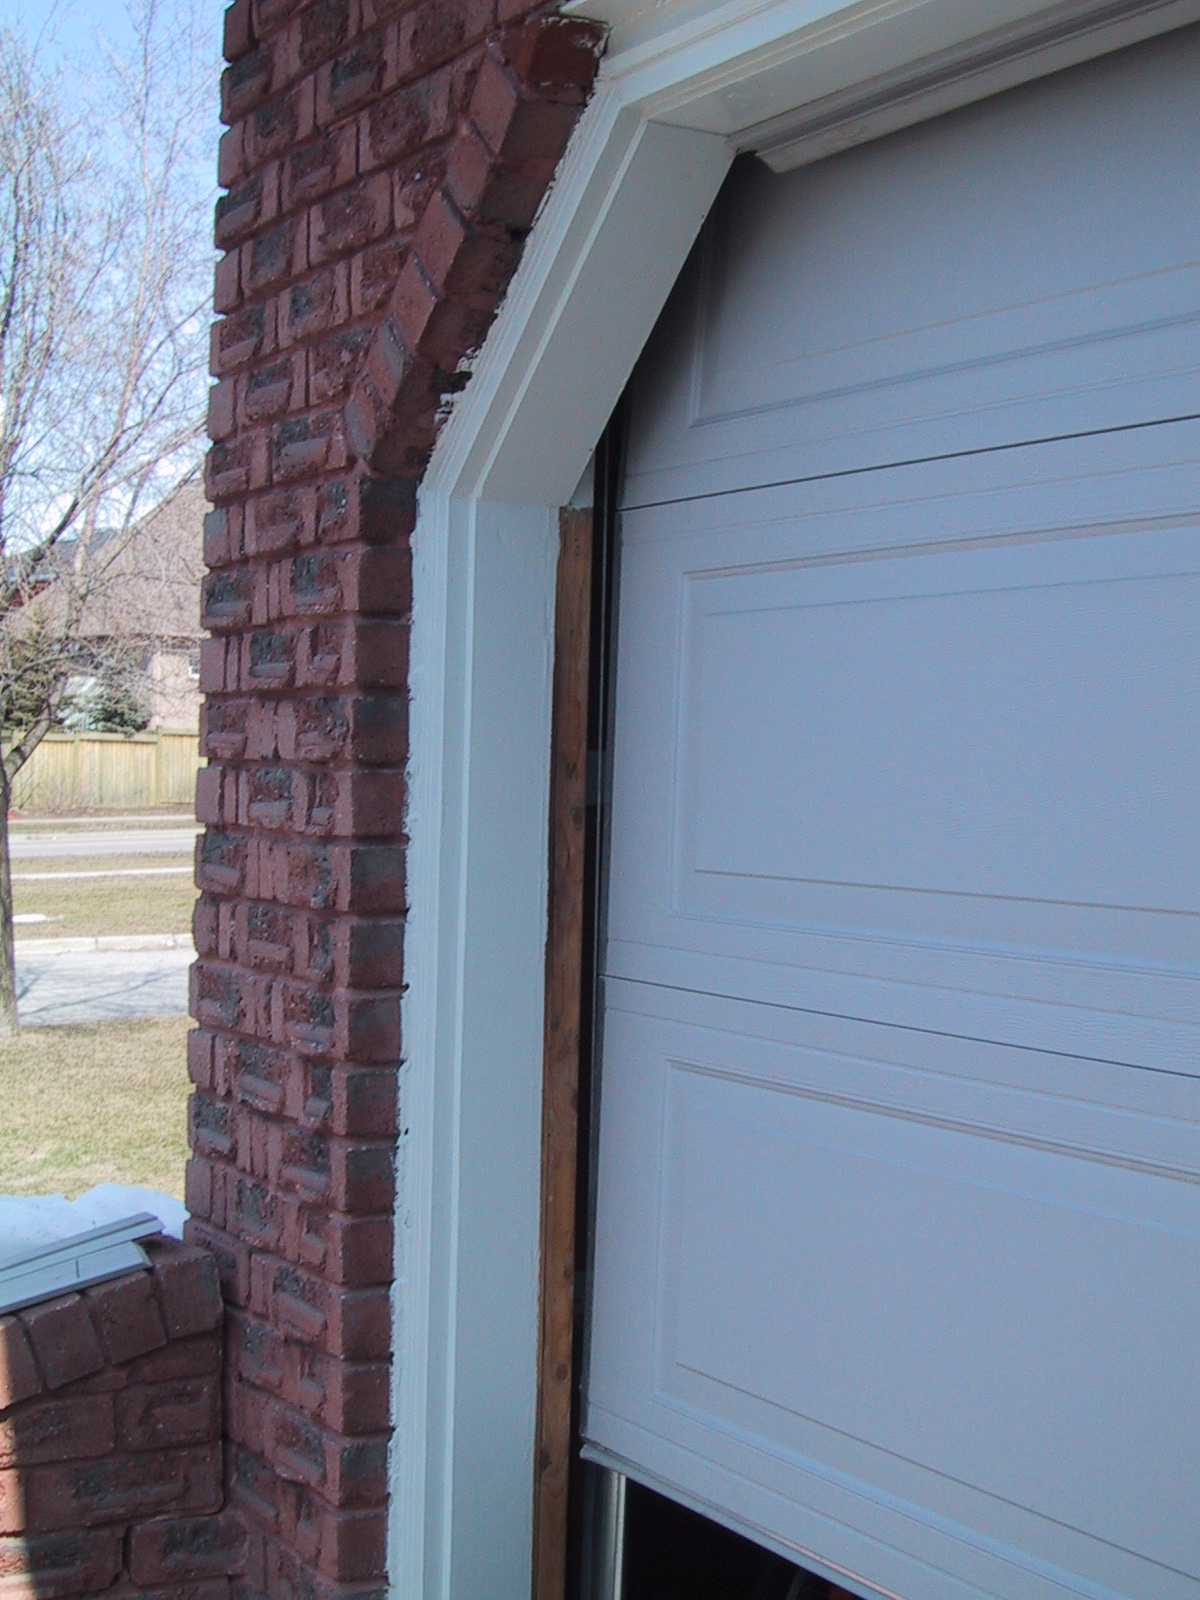 Garage Door Frame With No Weather Stripping